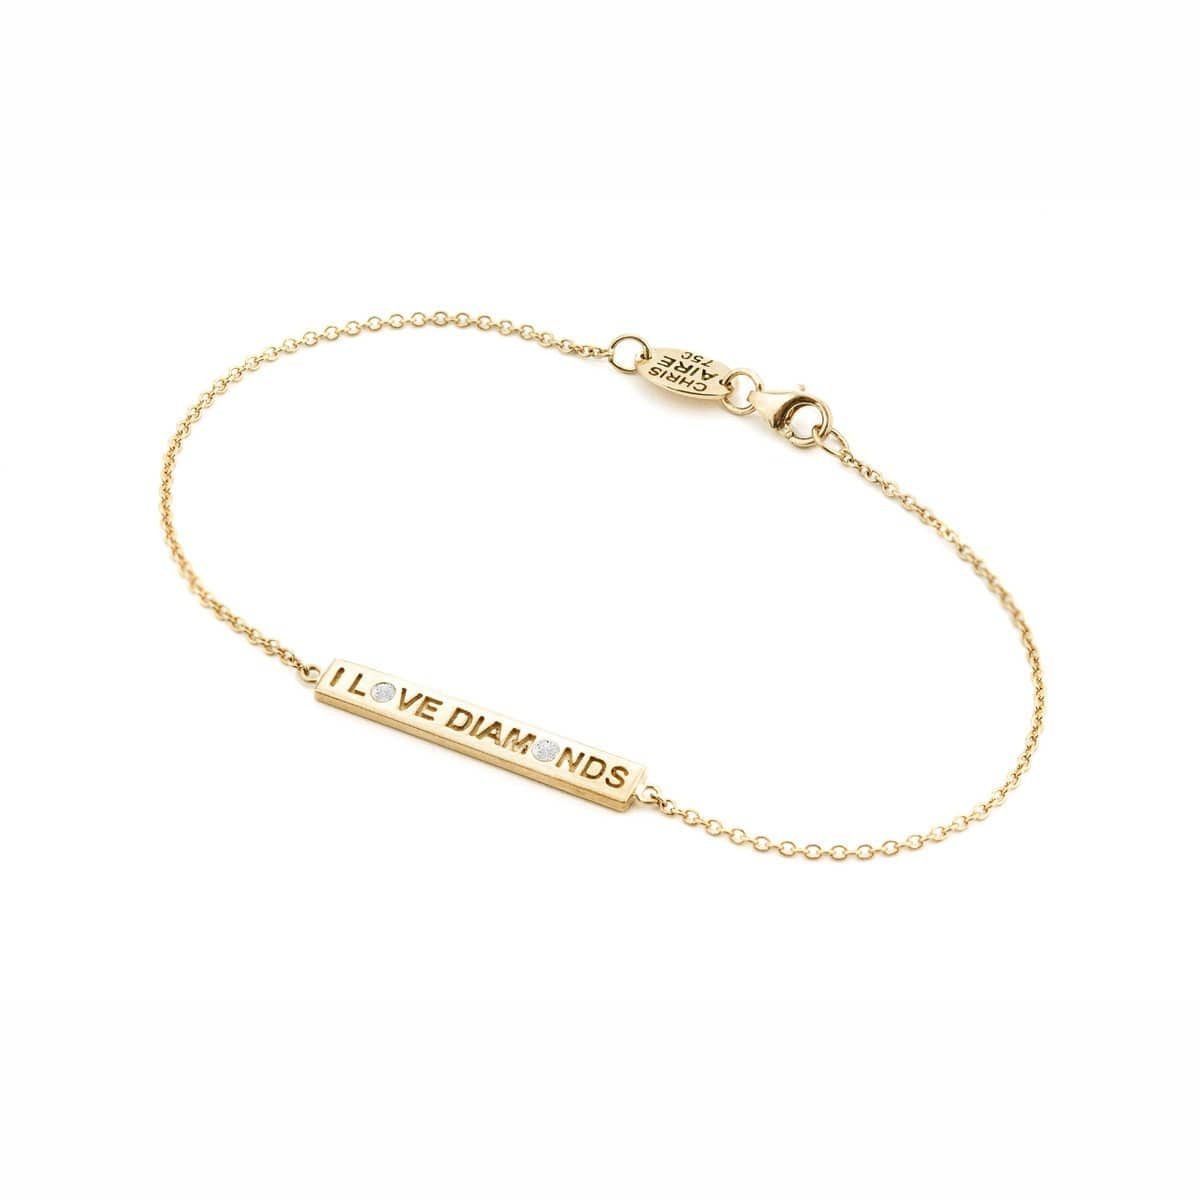 """I LOVE DIAMONDS"" BRACELET-YELLOW GOLD - Chris Aire Fine Jewelry & Timepieces"